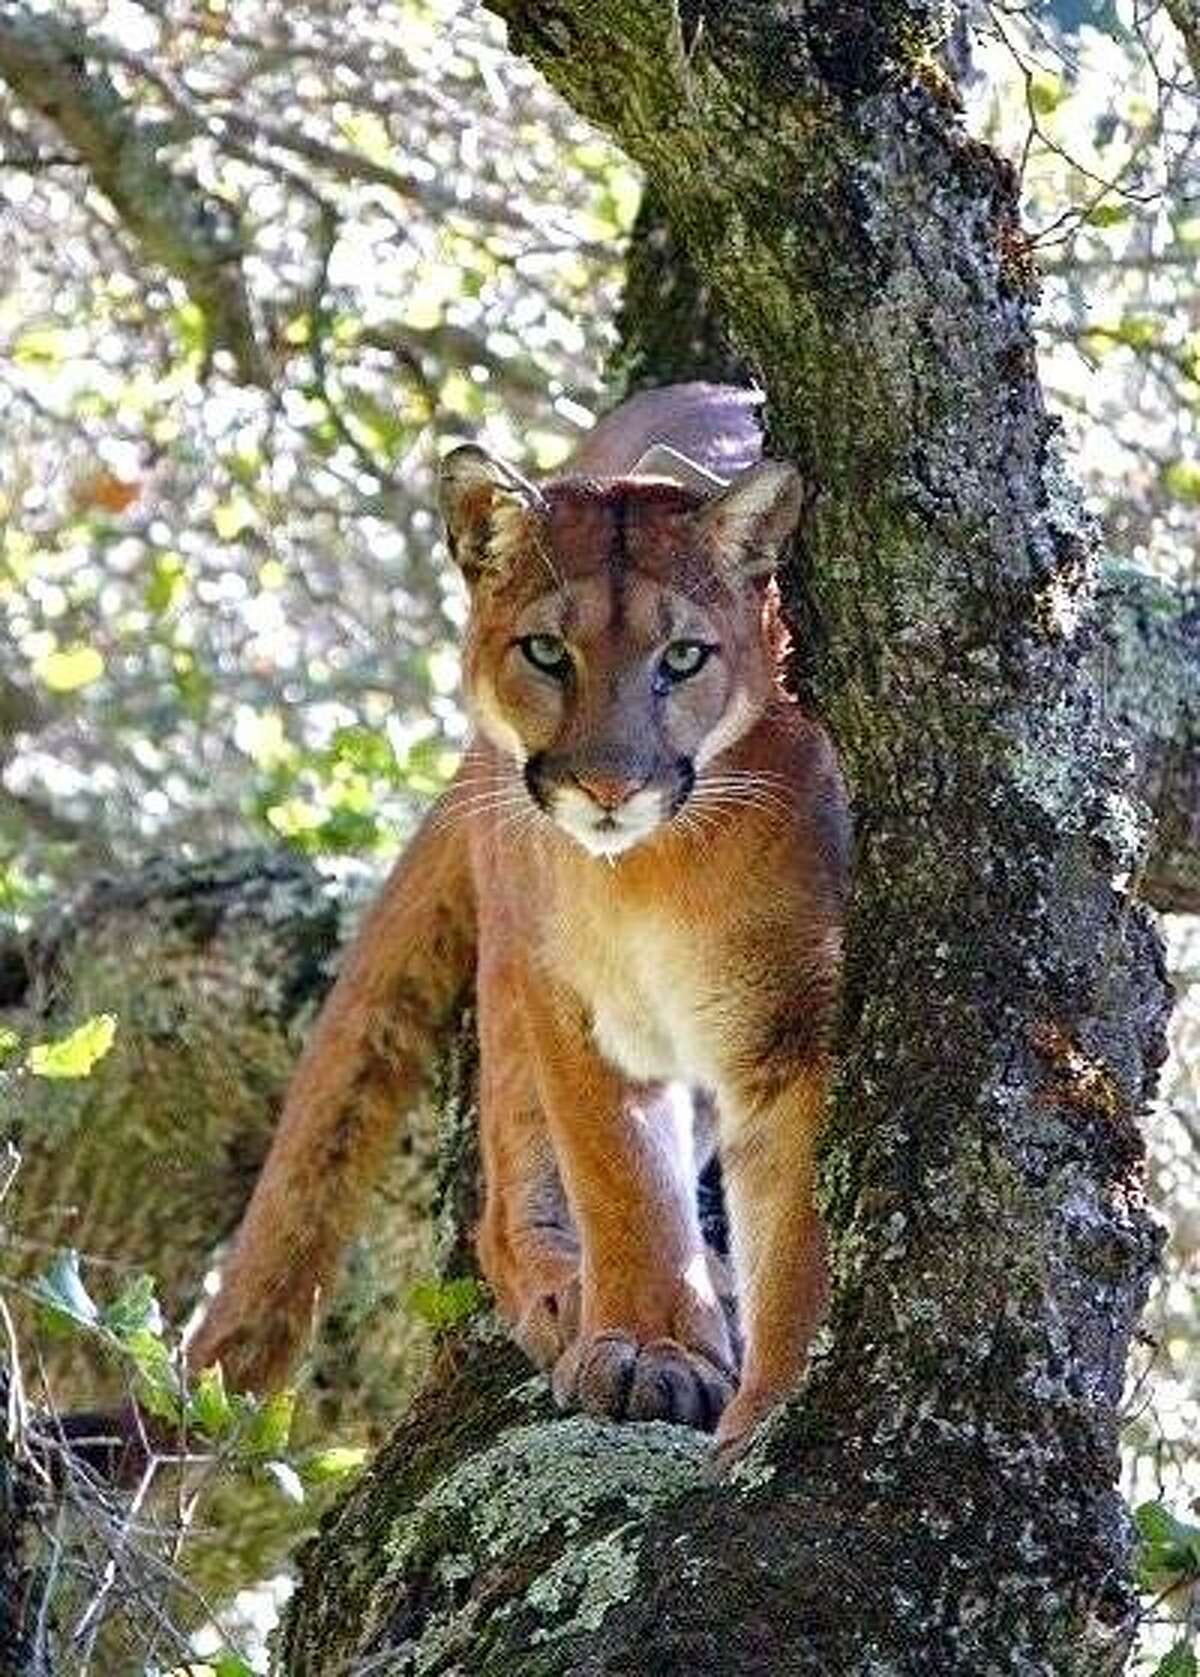 This mountain lion was caught on camera during the UC Santa Cruz study showing the level of fear predators display when human voices are heard in the area.